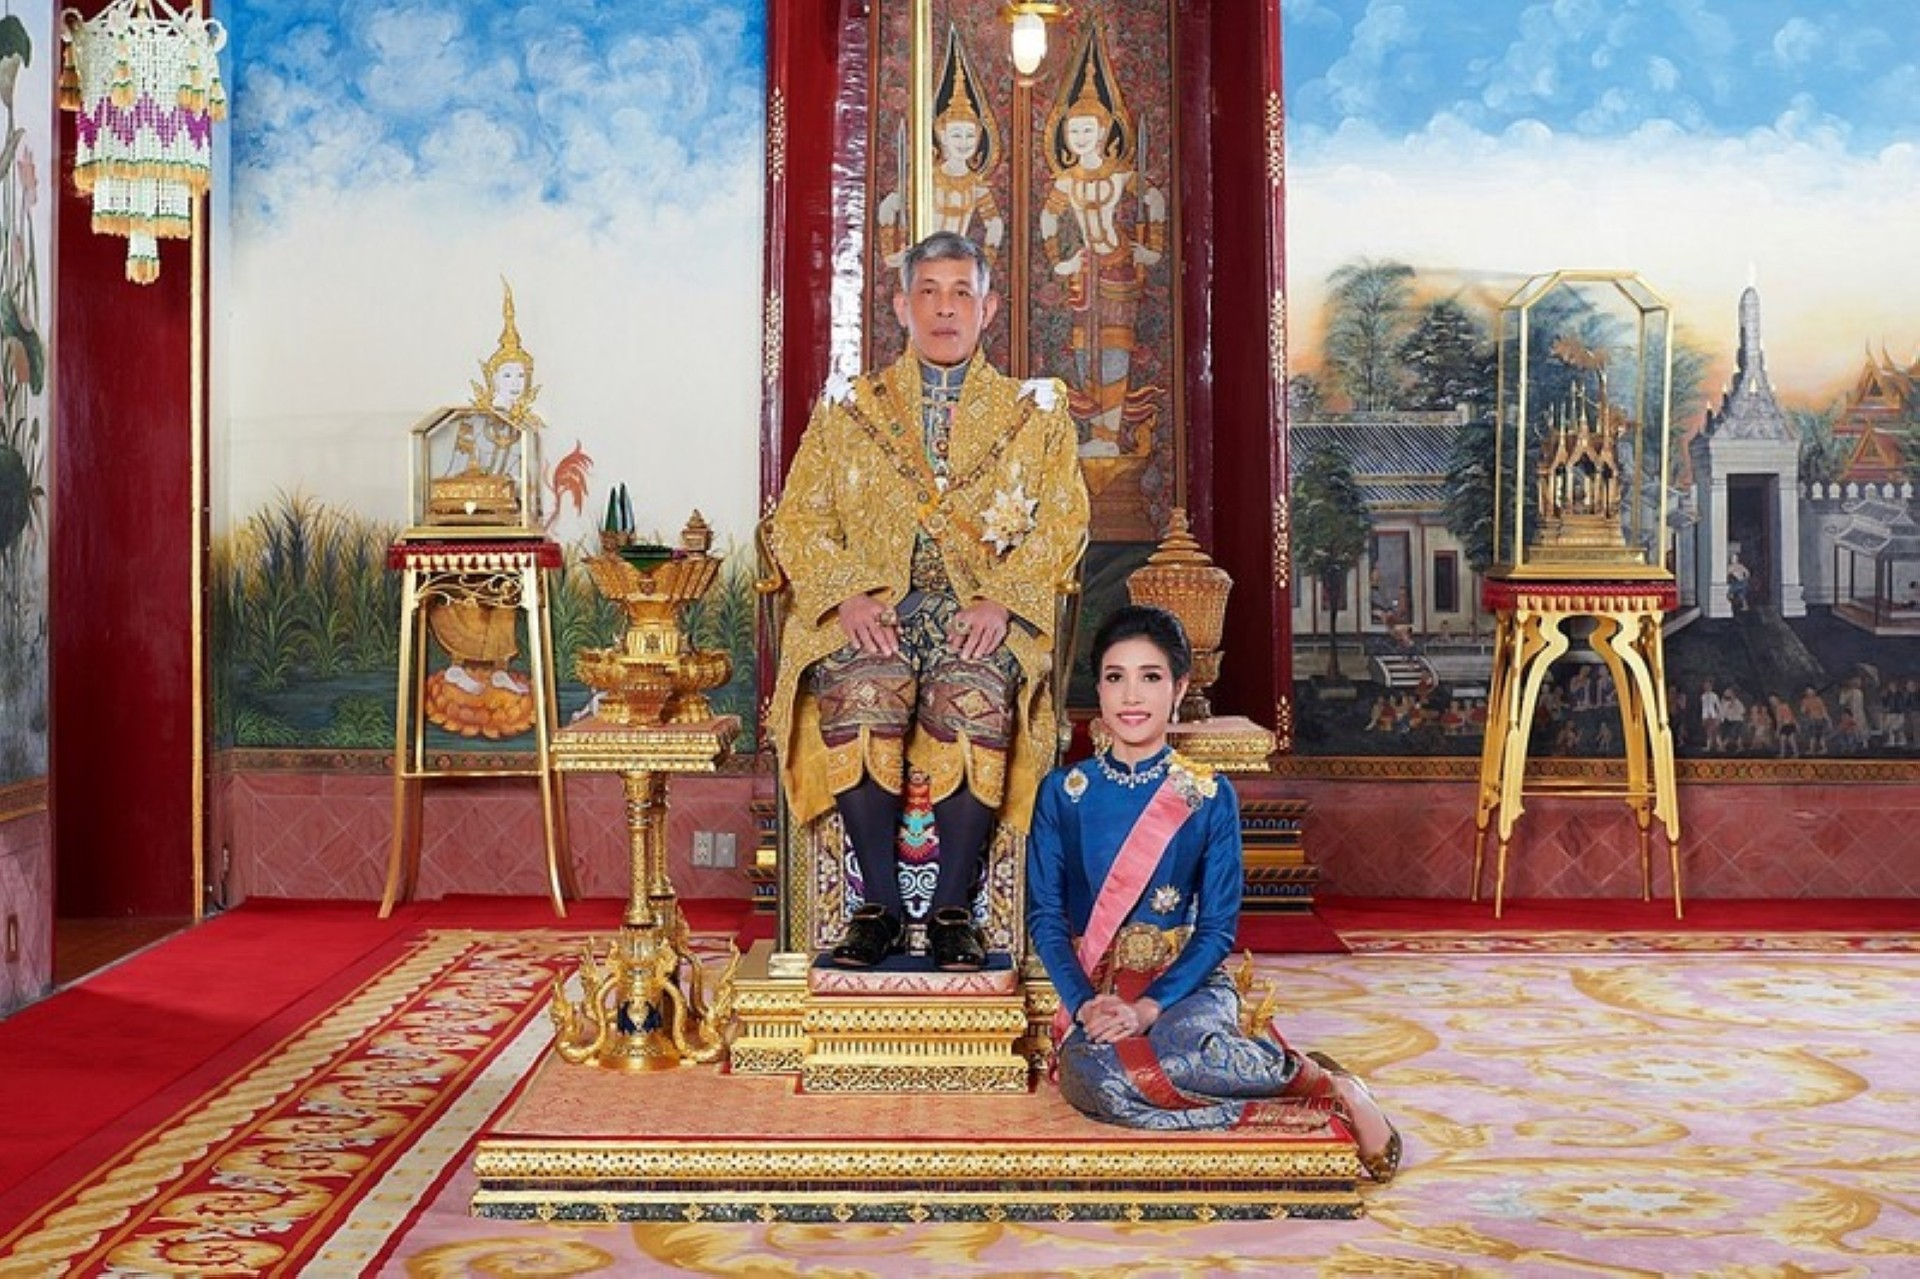 Thailands King Maha Vajiralongkorn and General Sineenat Wongvajirapakdi the royal consort pose at the Grand Palace in Bangkok Thailand  in this undated handout photo obtained by Reuters August 27 2019. Thailands King Maha Vajiralongkorn has stripped his newly named royal consort Sineenat of her titles and military ranks for being quotdisloyalquot and conducting a rivalry with Queen Suthida the palace said late on Monday.   Royal Household BureauHandout via REUTERS